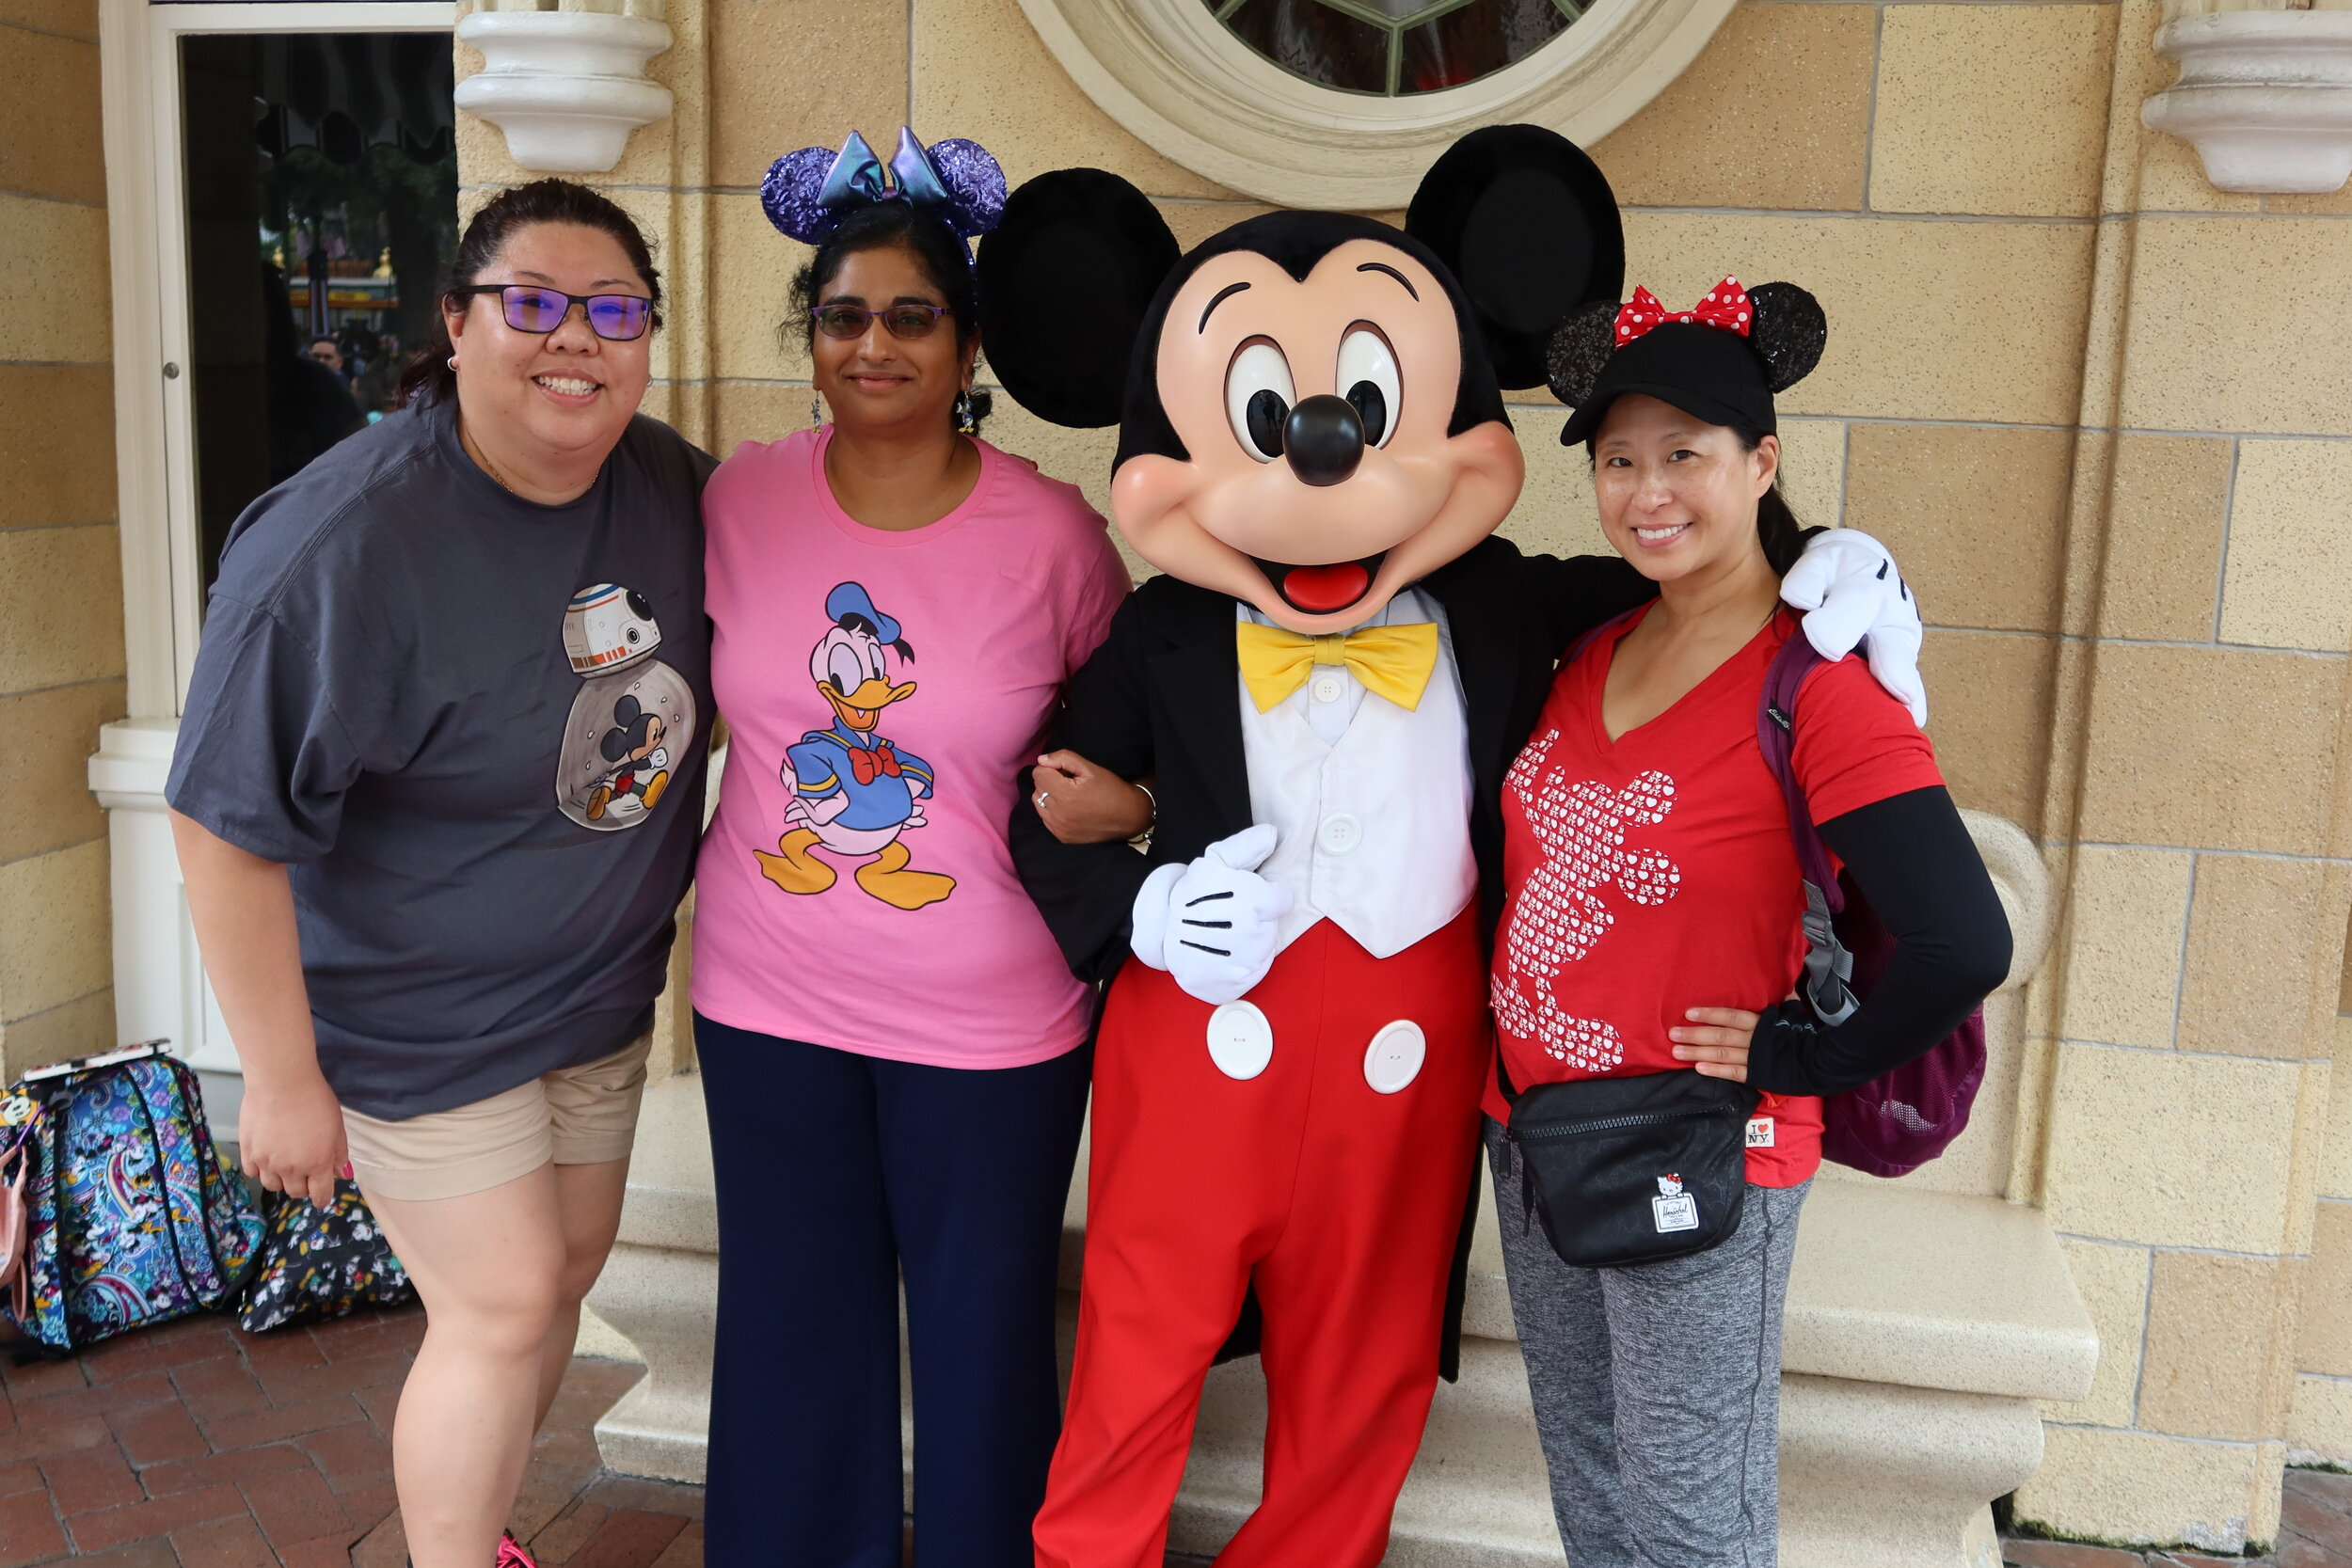 Mickey Mouse - We started off our D23 week with going to see the Mouse in Charge. In retrospect, definitely do D23 first before the Disney Parks!